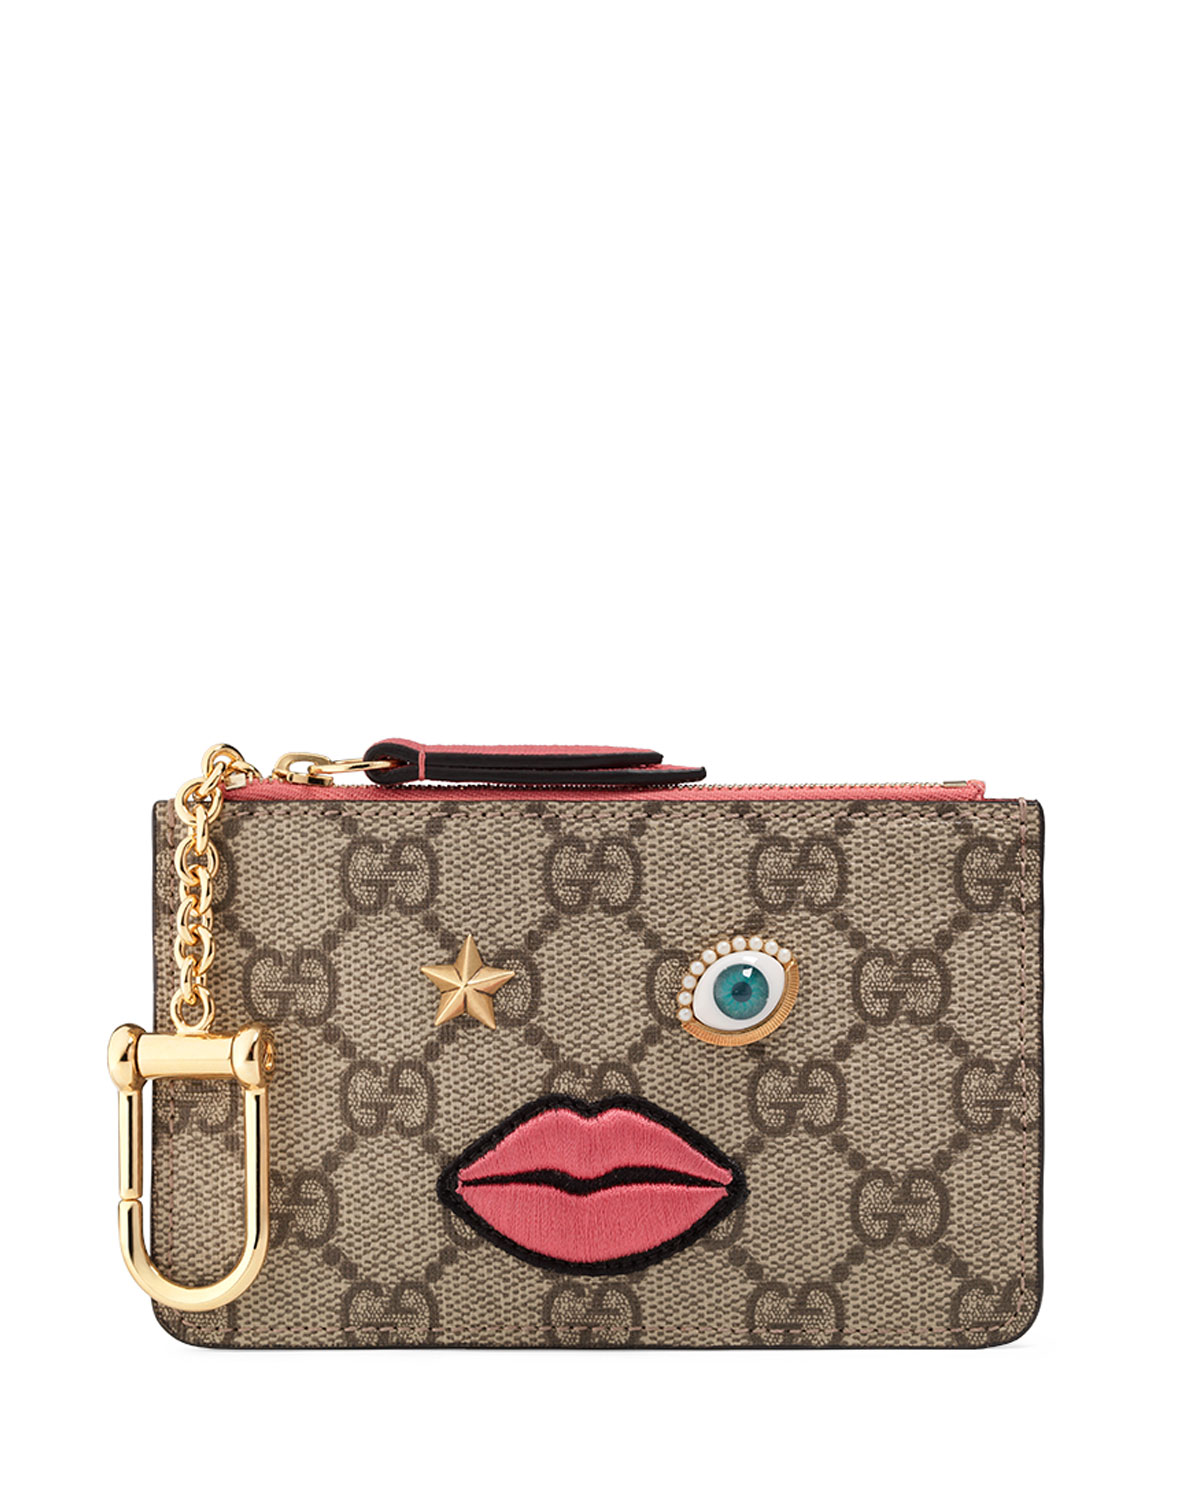 Gucci Circus Key Pouch, Brown